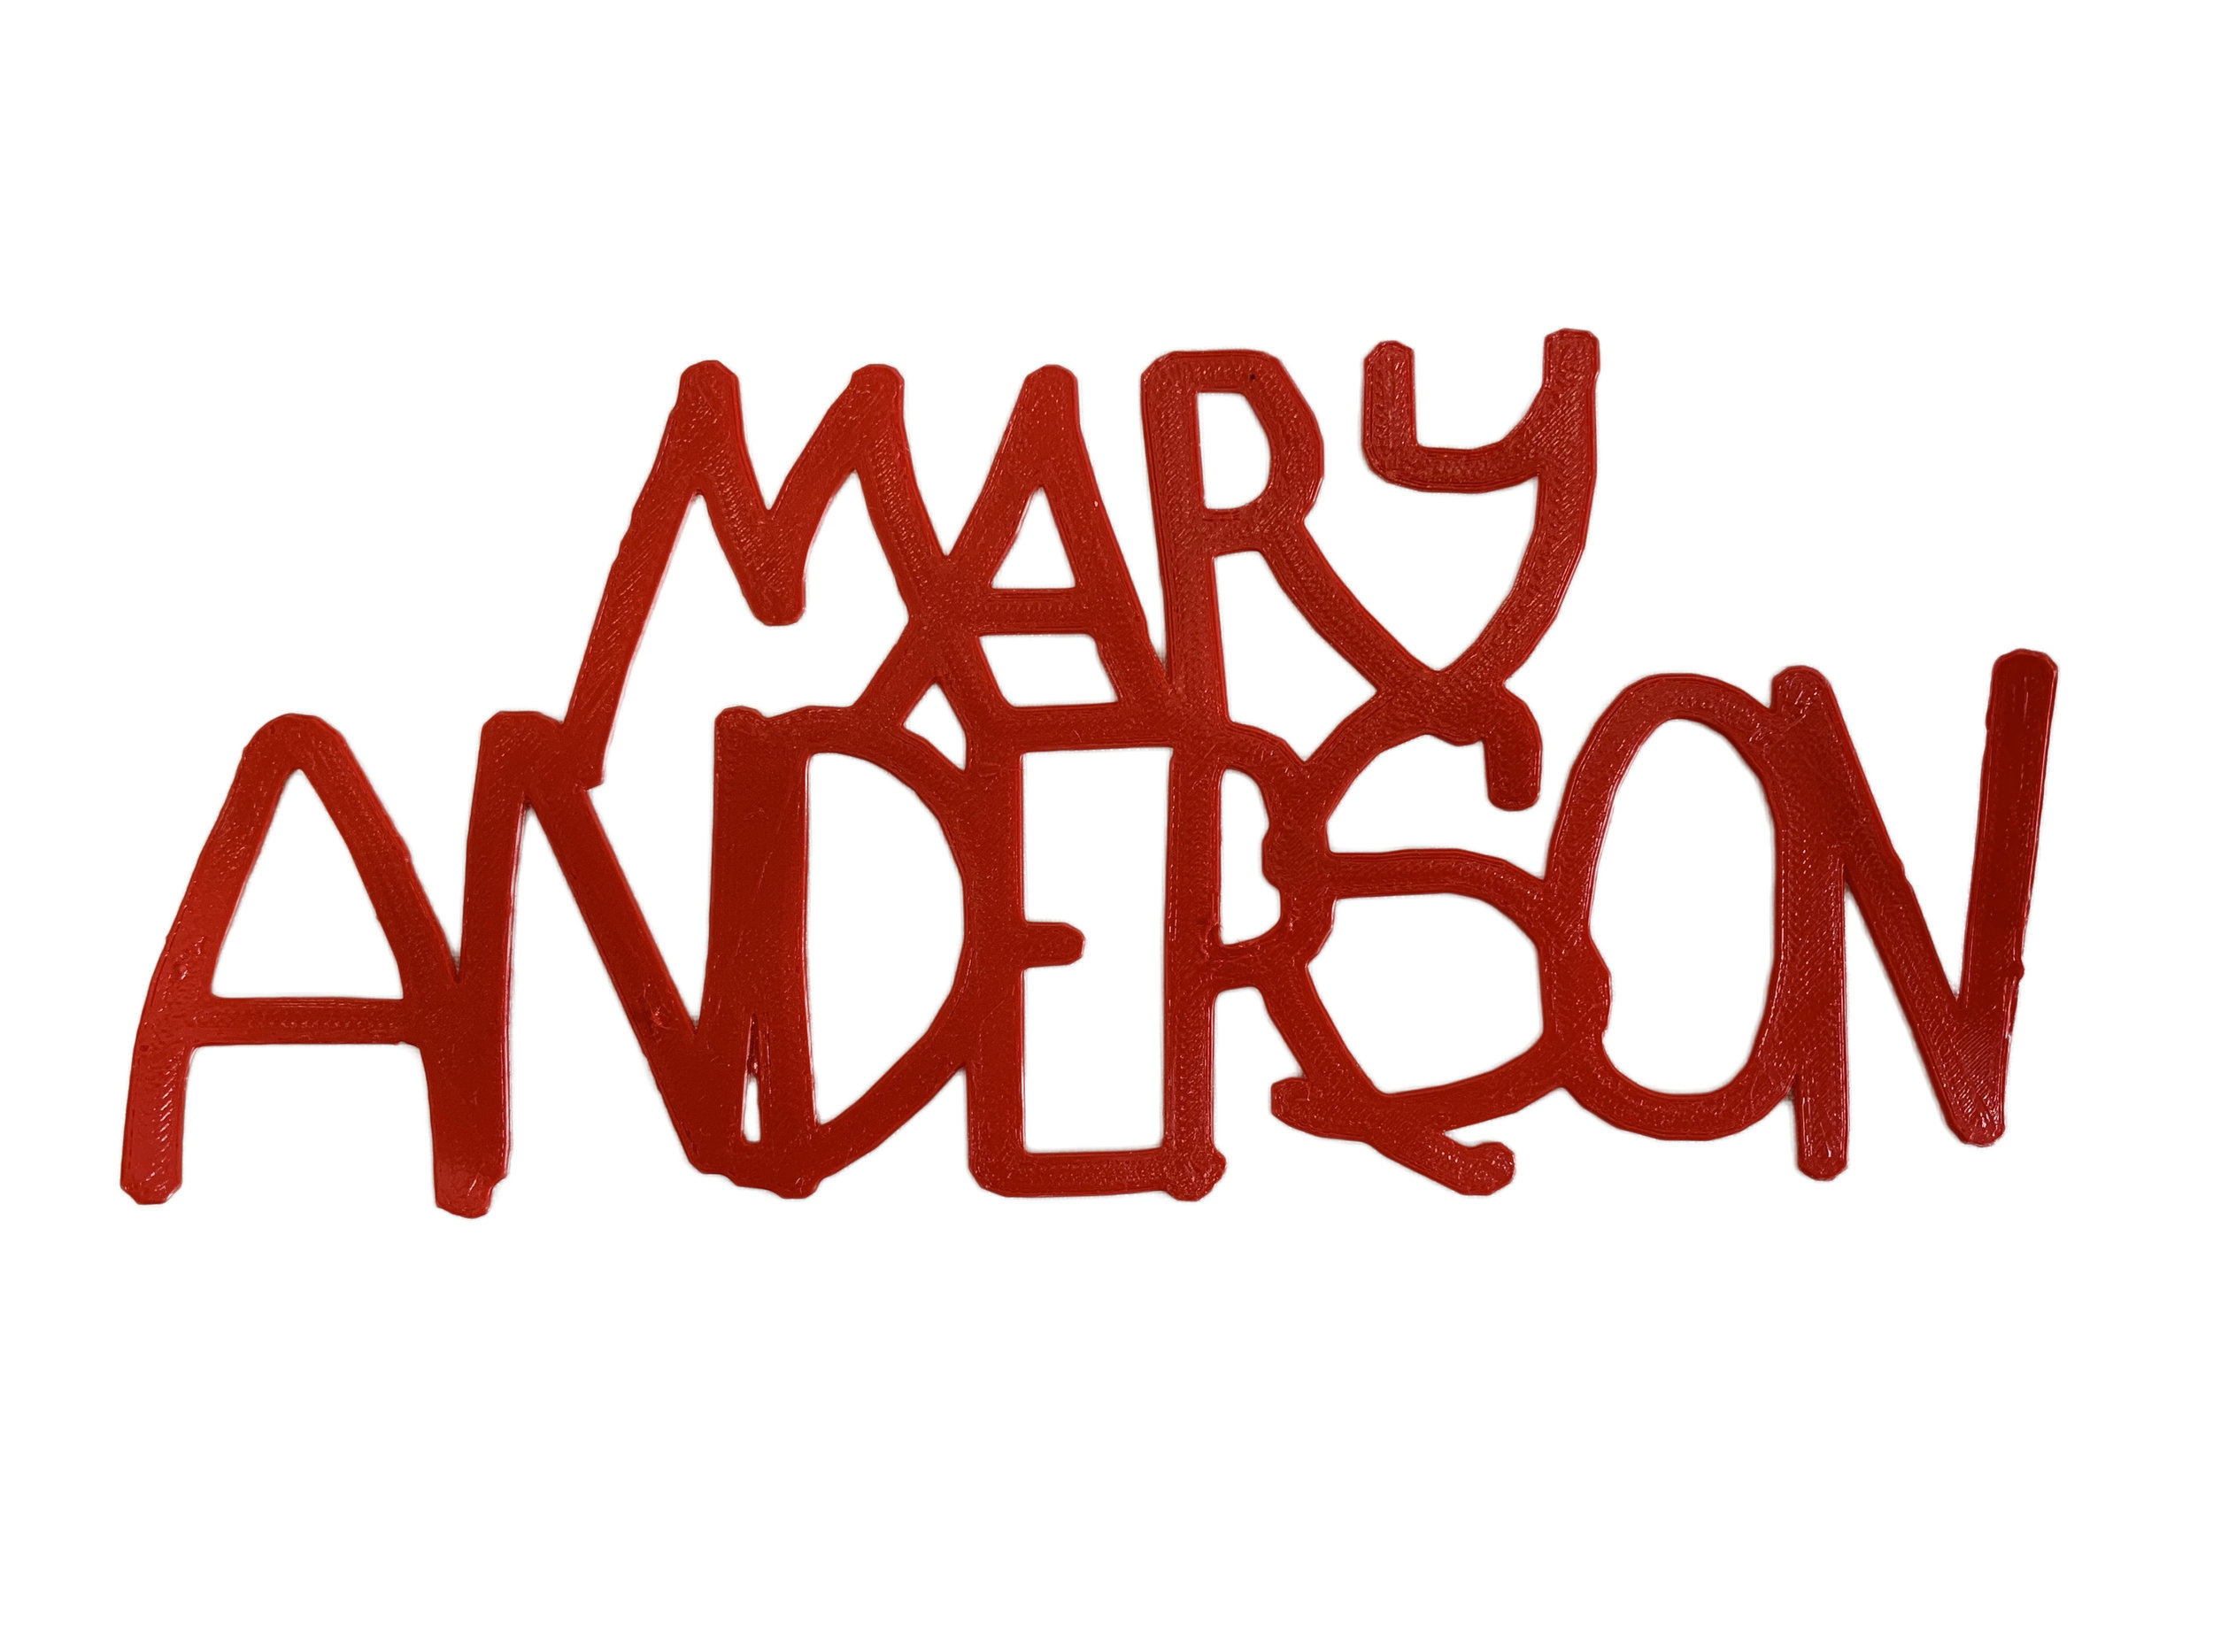 Mary AndersonNoBackground.jpg